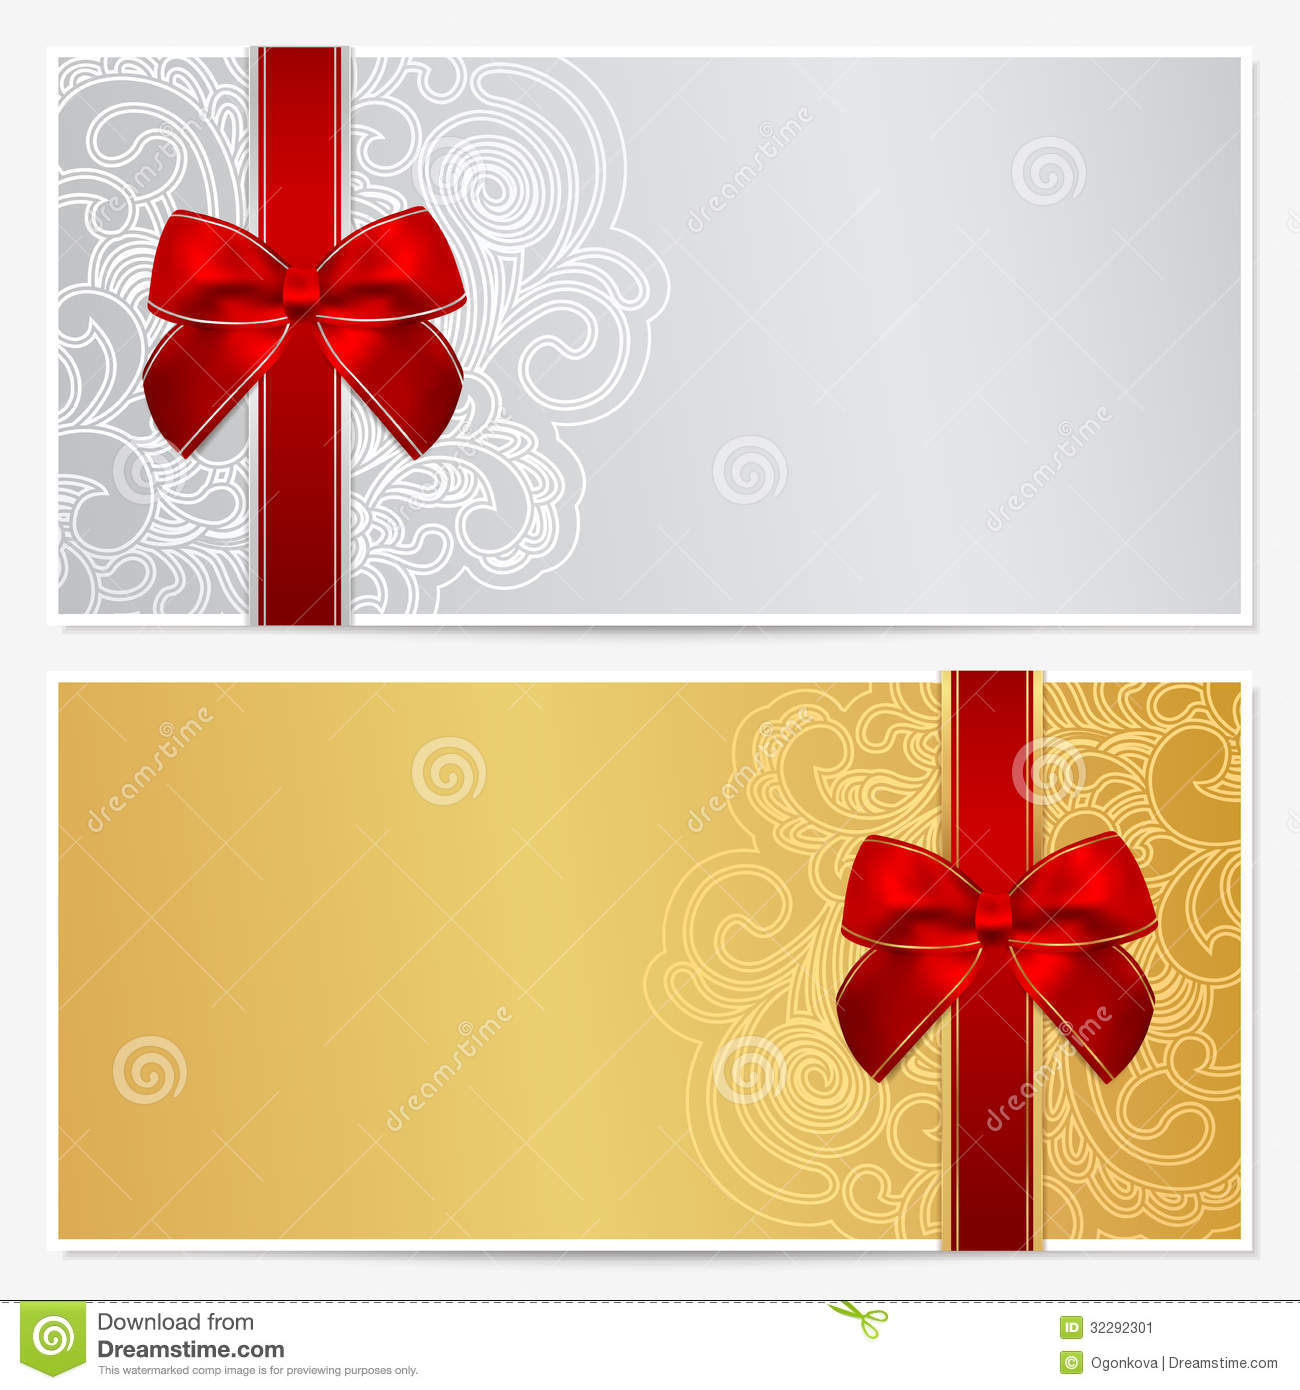 Christmas voucher template militaryalicious christmas voucher template gift certificate templates free download yelopaper Gallery